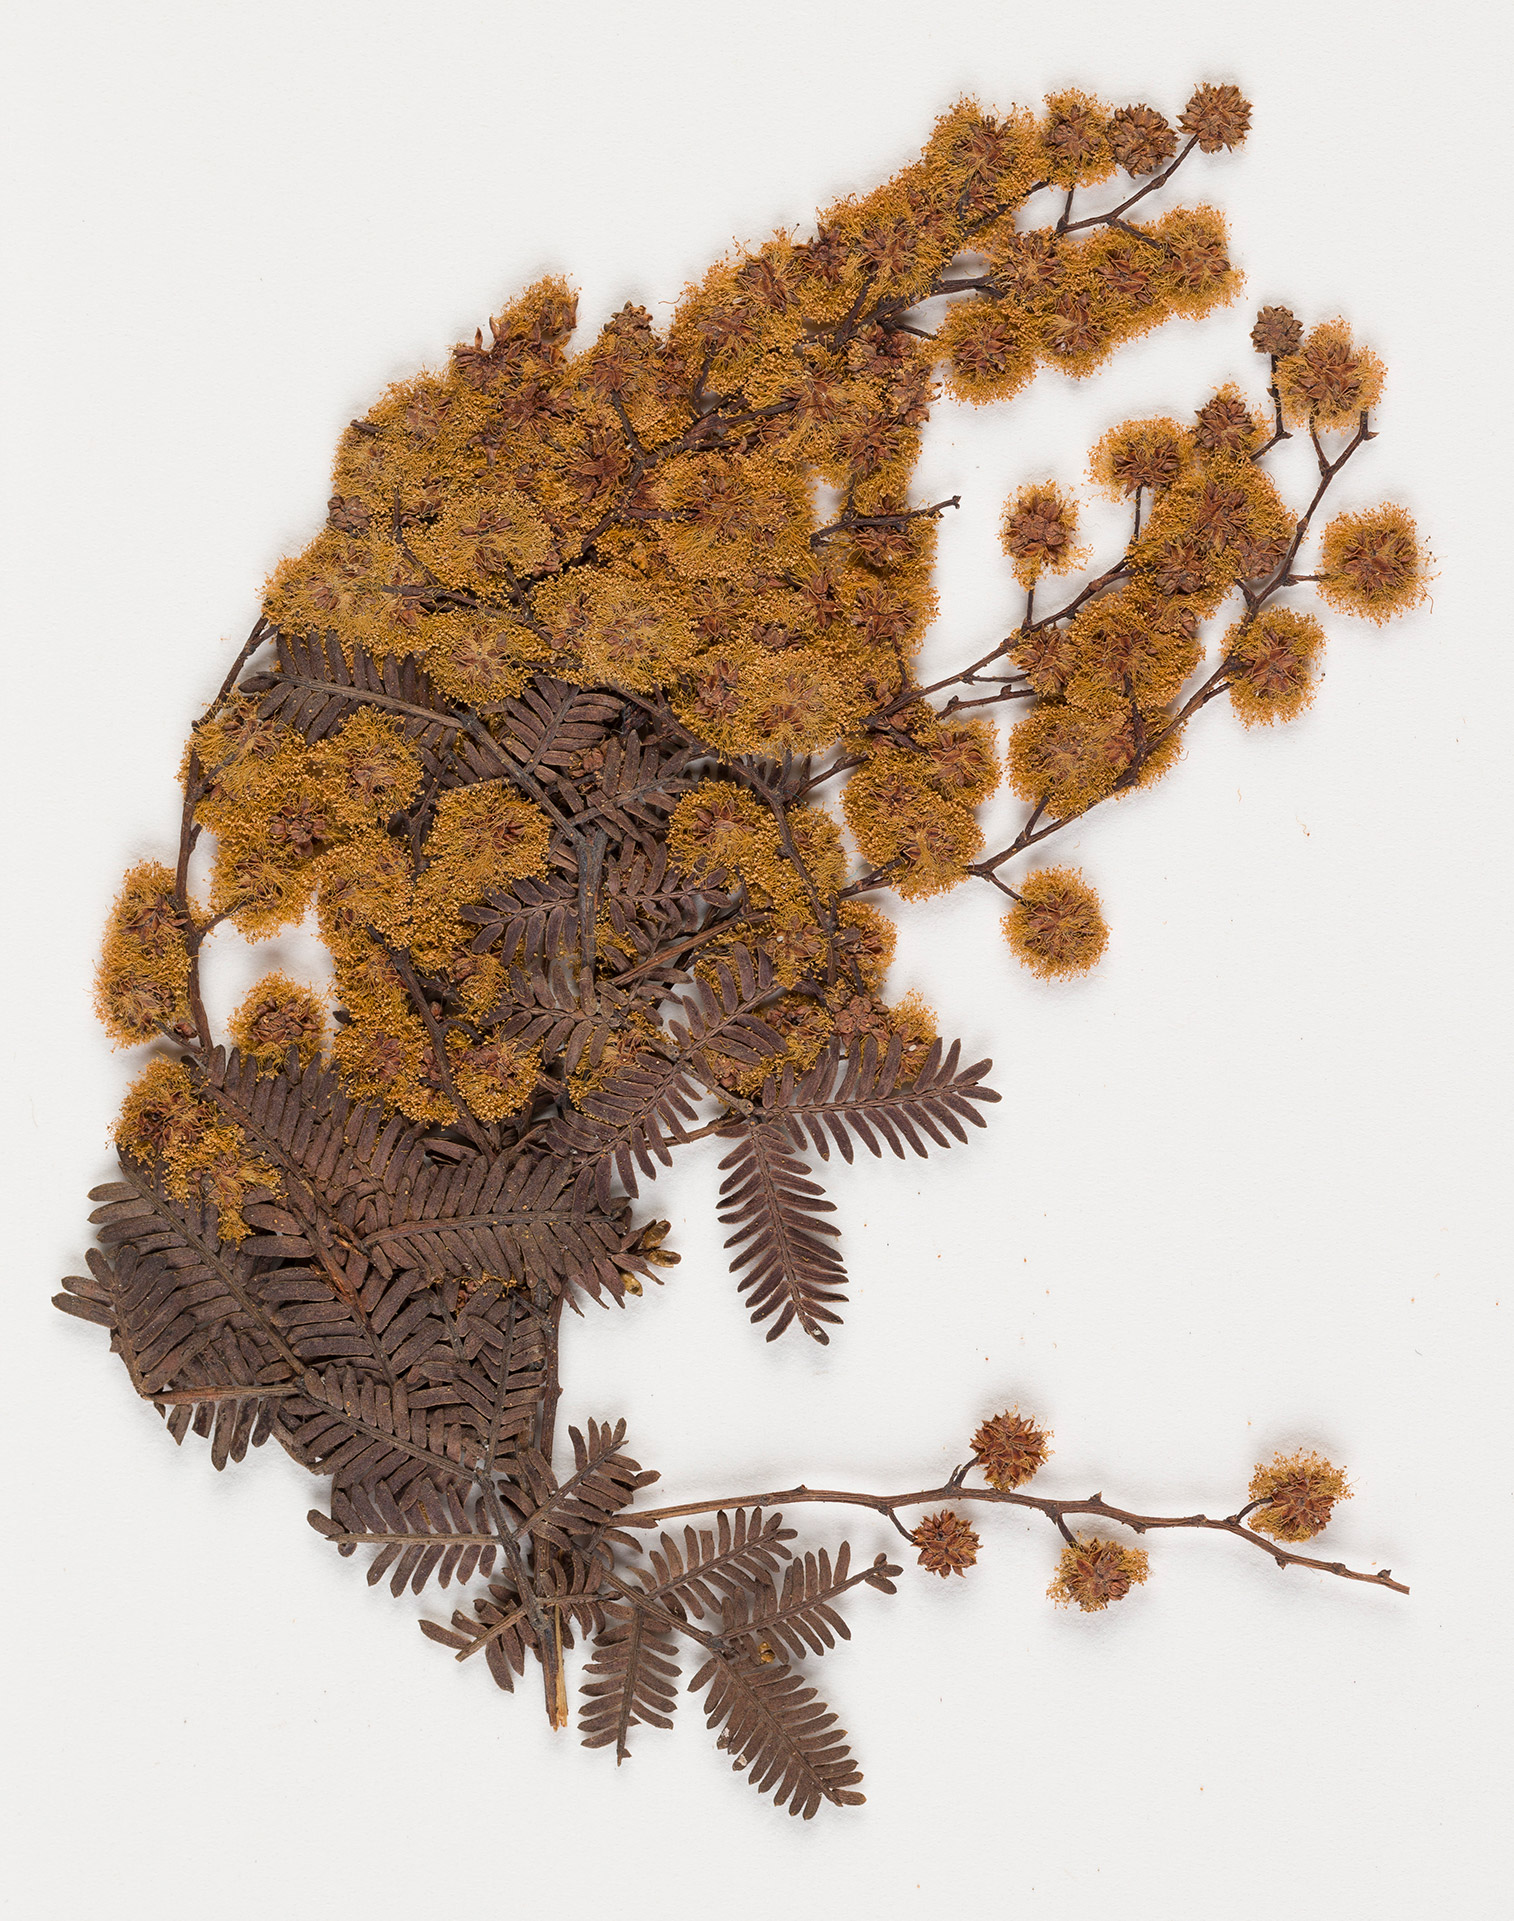 A dried sprig of wattle.